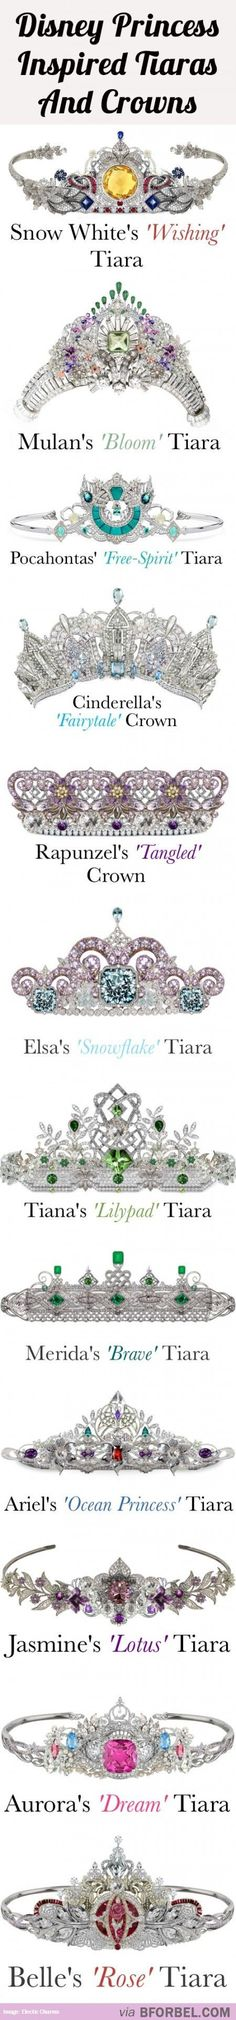 12 Disney Princess Tiaras And Crowns…All Set With Beautiful Diamonds, Gems Precious Stones. - I'll take the Cinderella, Rapunzel and of course Ariel tiara, please! Walt Disney, Disney Mode, Disney Fun, Disney Style, Disney Magic, Disney Nerd, Disney And Dreamworks, Disney Pixar, Disney Characters